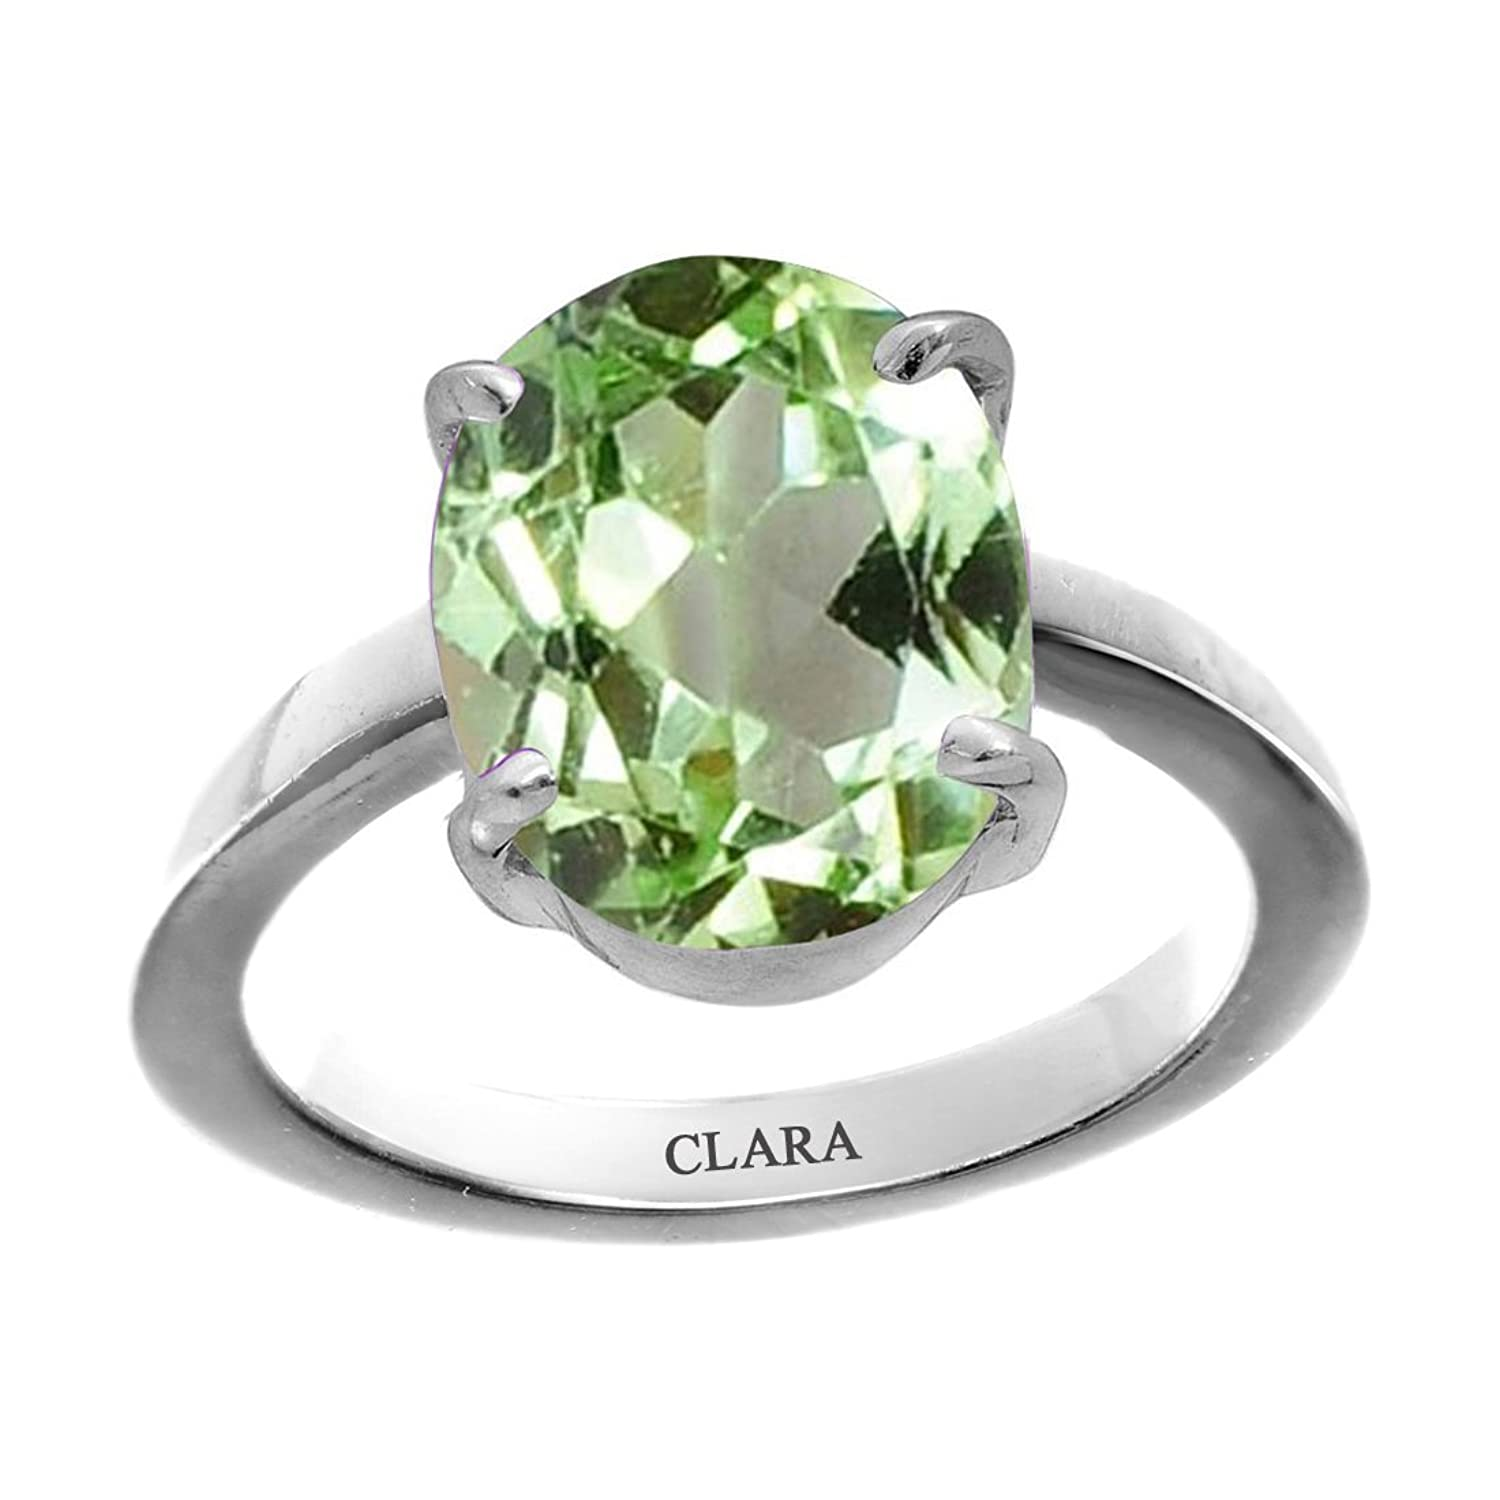 CLARA Certified Peridot 3.9cts or 4.25ratti original stone Sterling Silver Astrological Ring for Men and Women